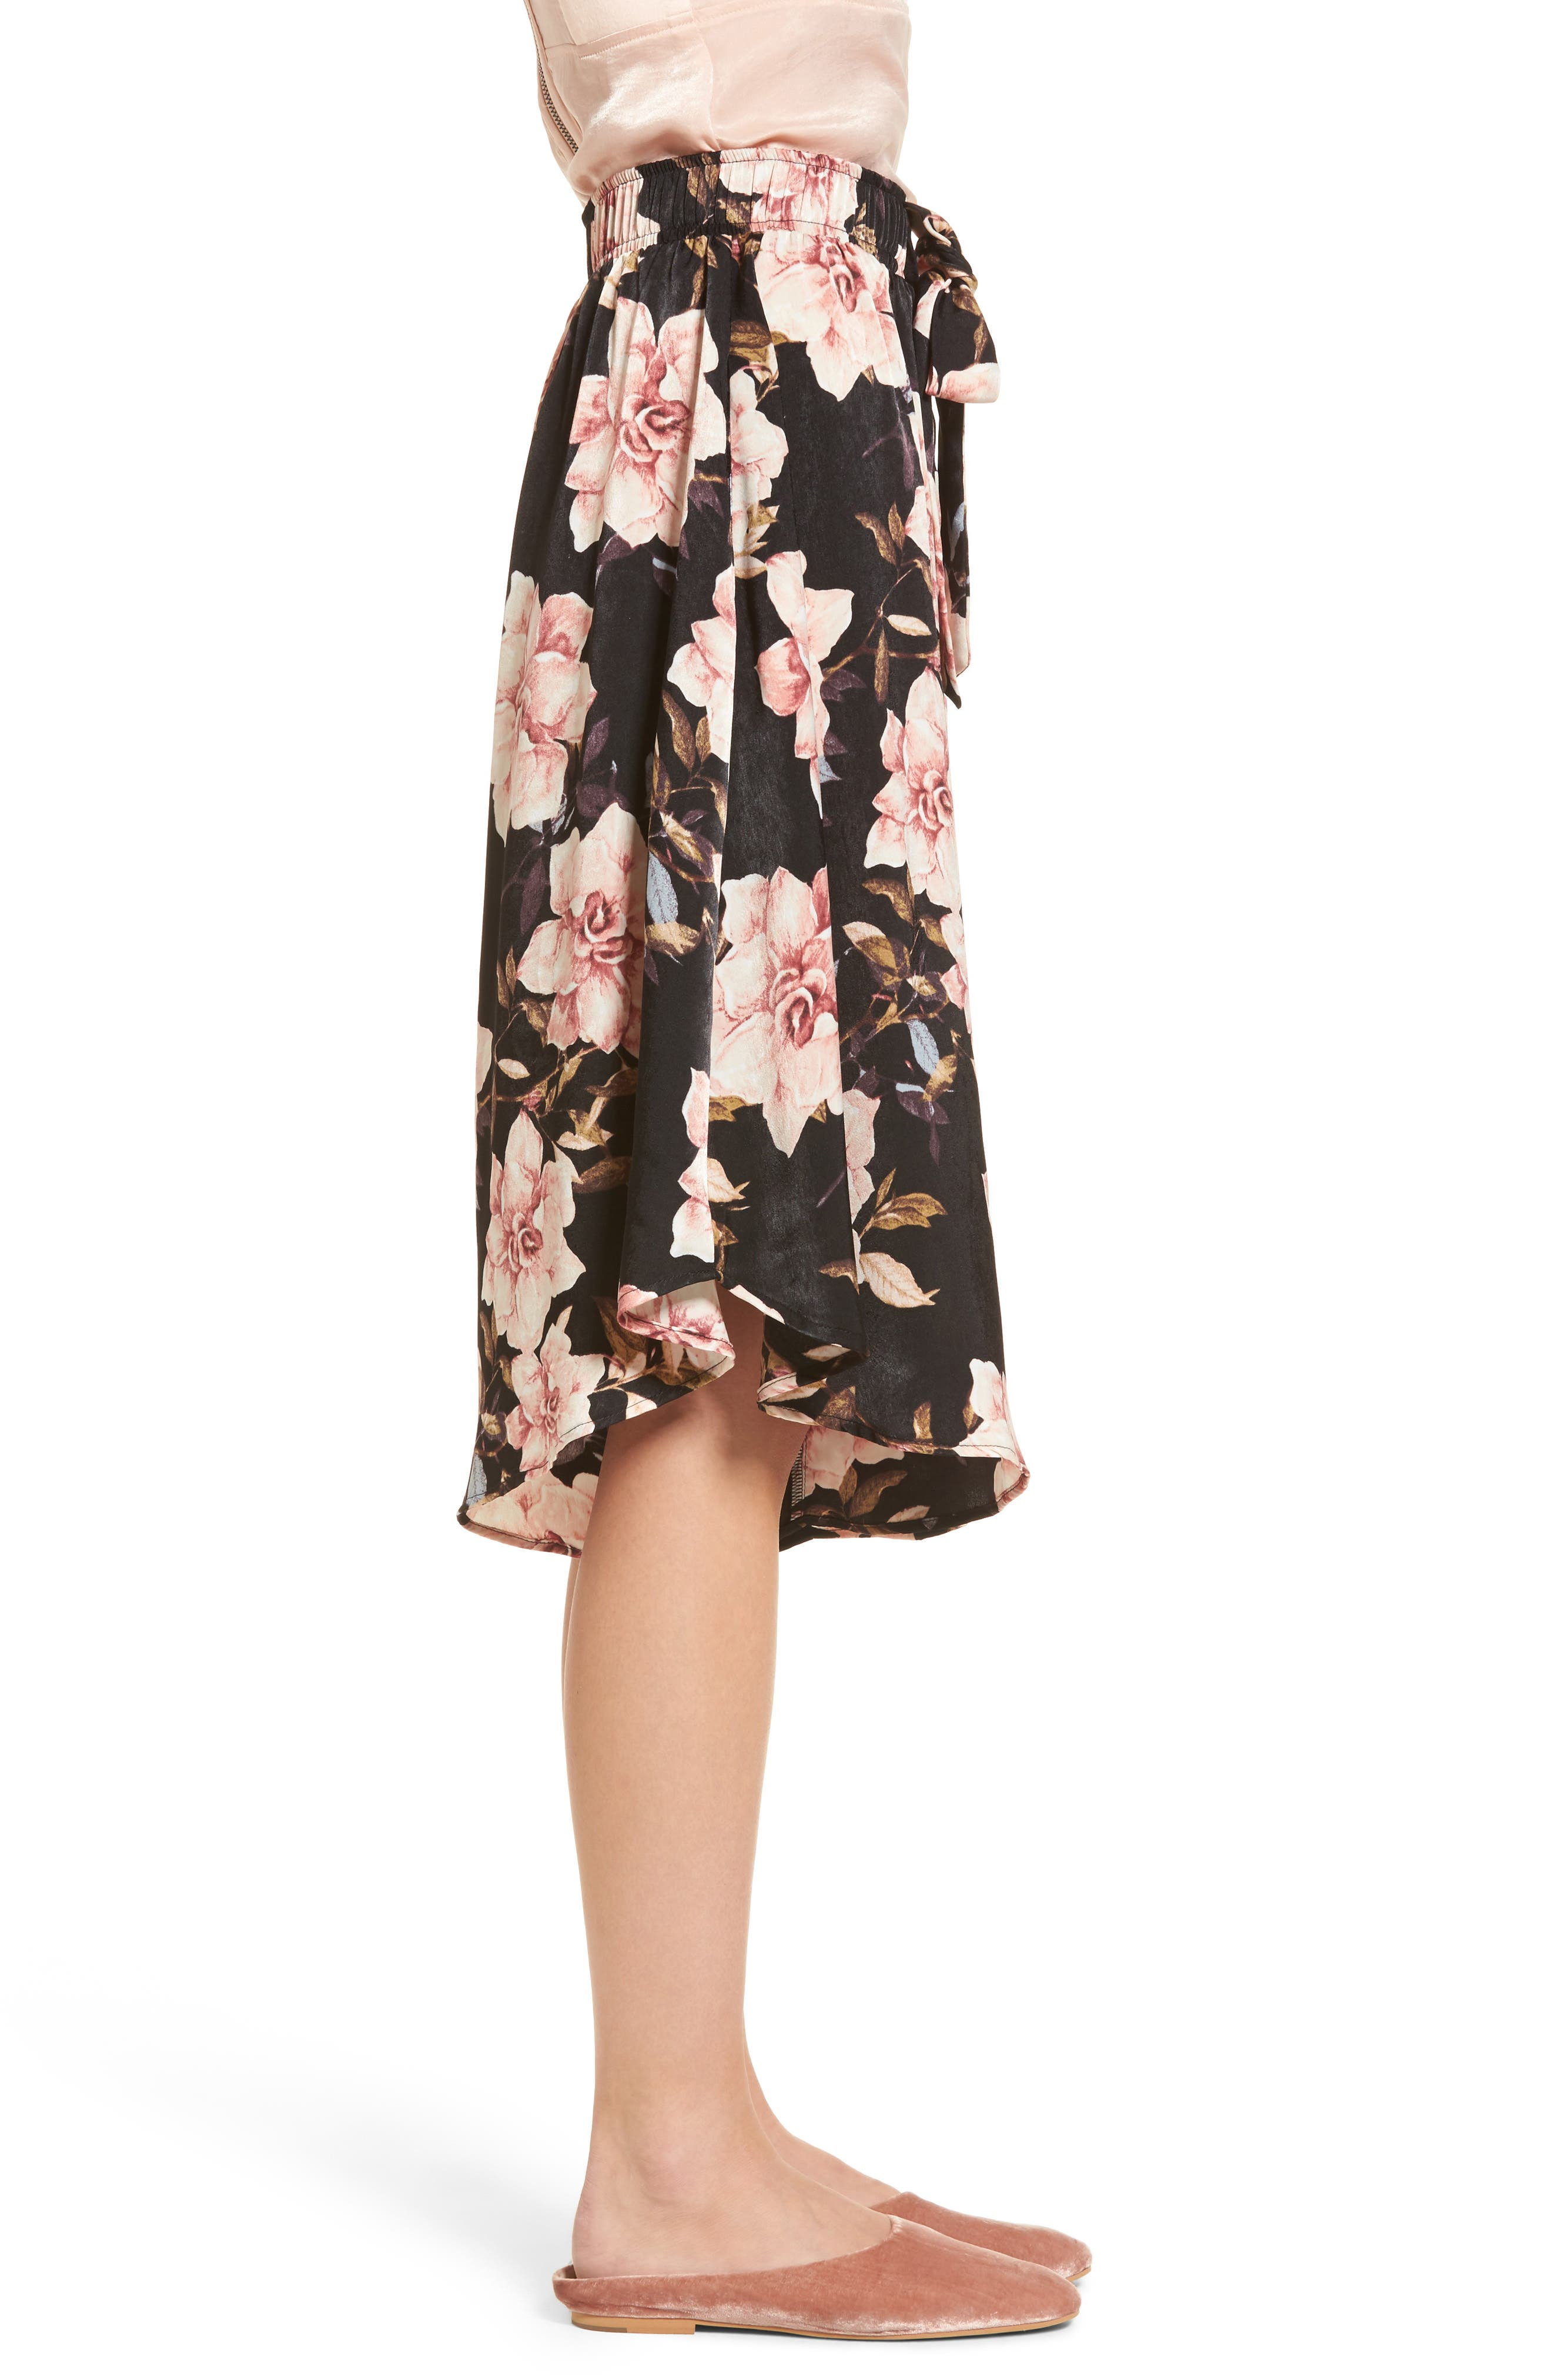 Floral Culottes,                             Alternate thumbnail 3, color,                             Black Garden Rose Floral